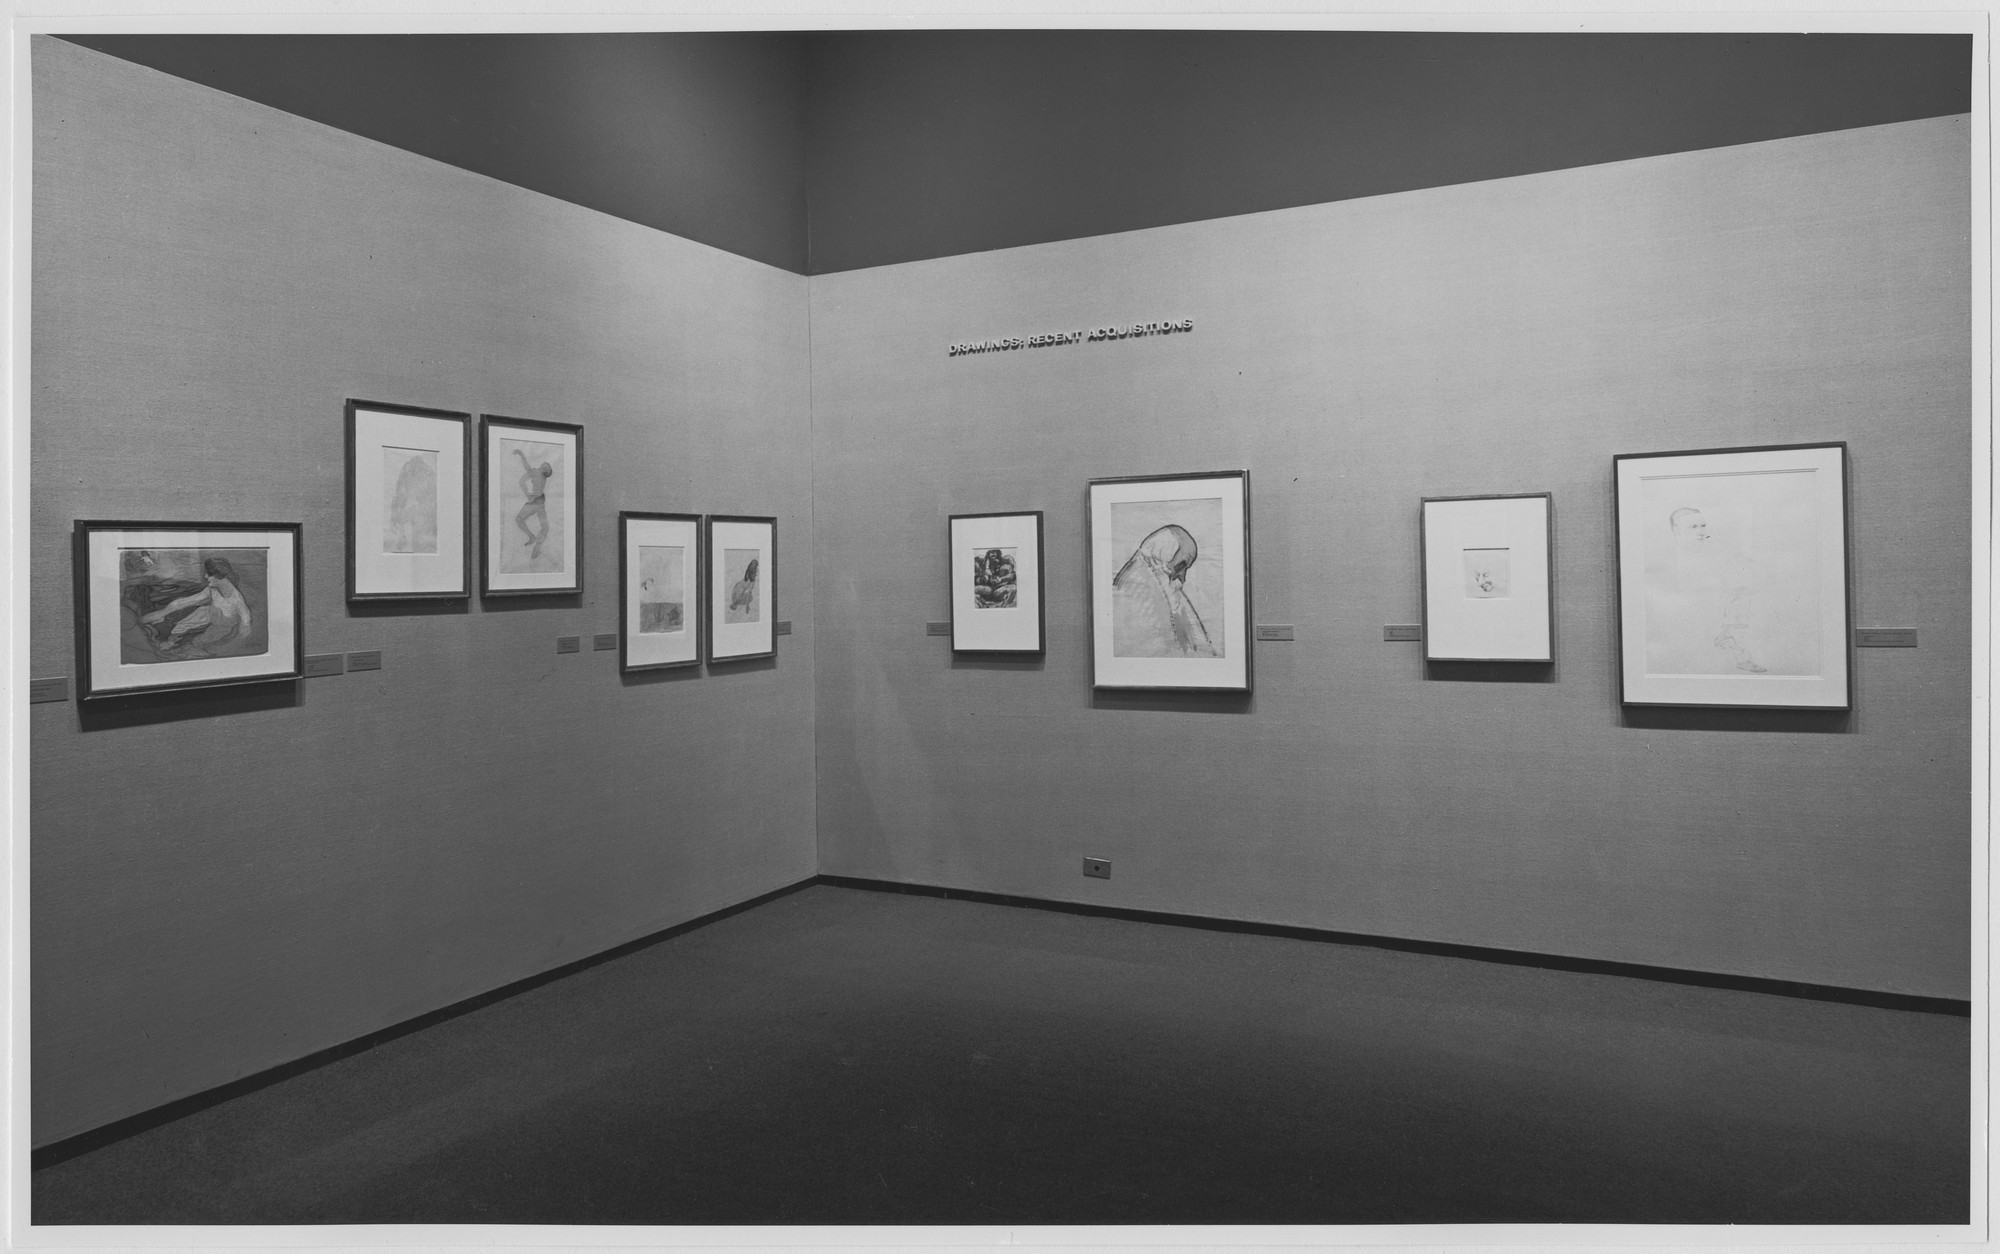 "Installation view of the exhibition, ""Drawings: Recent Acquisitions."" June 6, 1967–November 22, 1967. Photographic Archive. The Museum of Modern Art Archives, New York. IN830.1. Photograph by James Mathews."